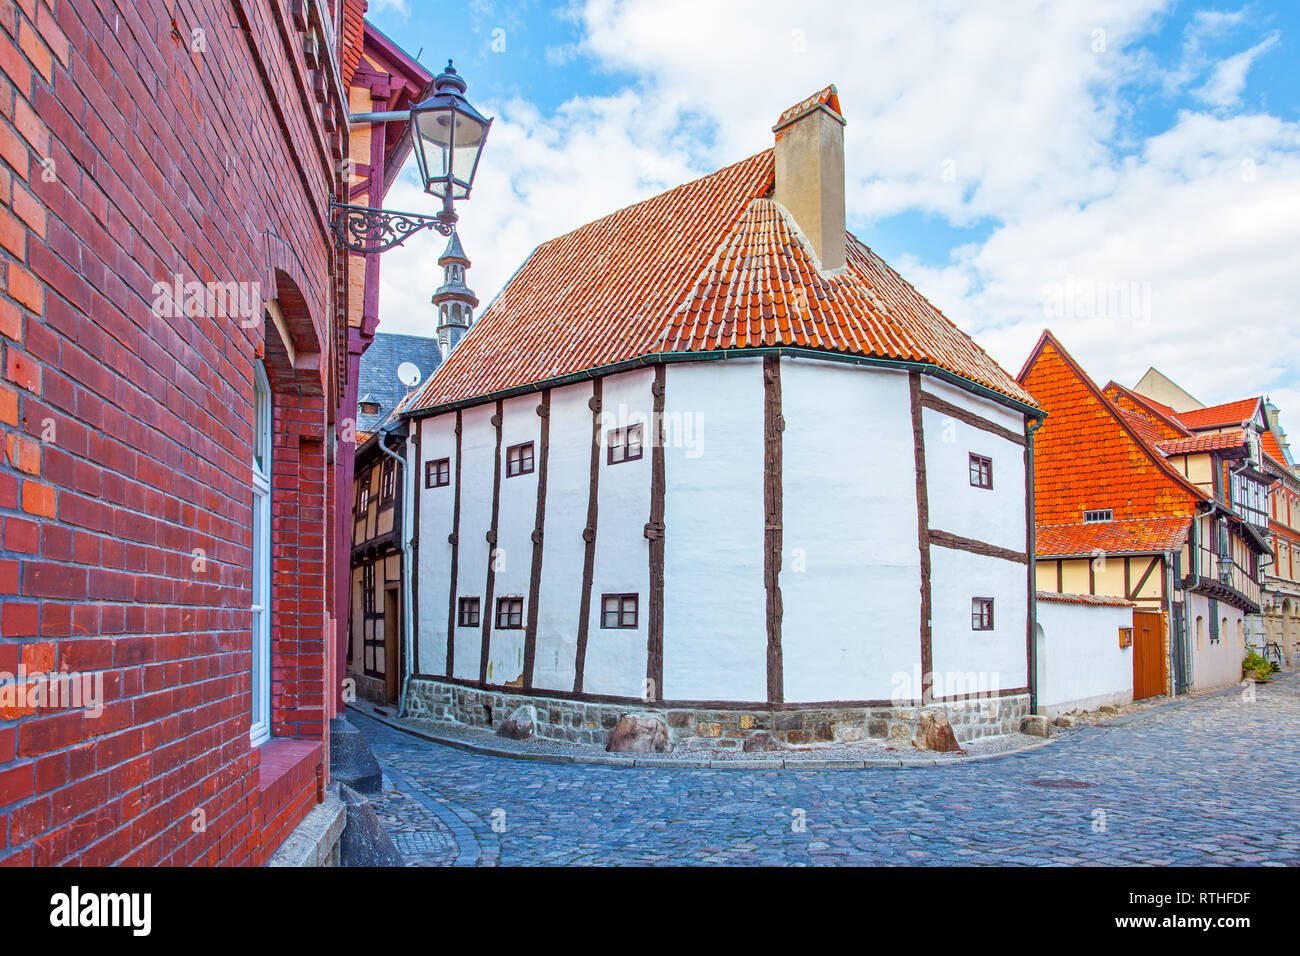 Street and the oldest timber framing house in Germany (14th century), Quedlinburg - Stock Image